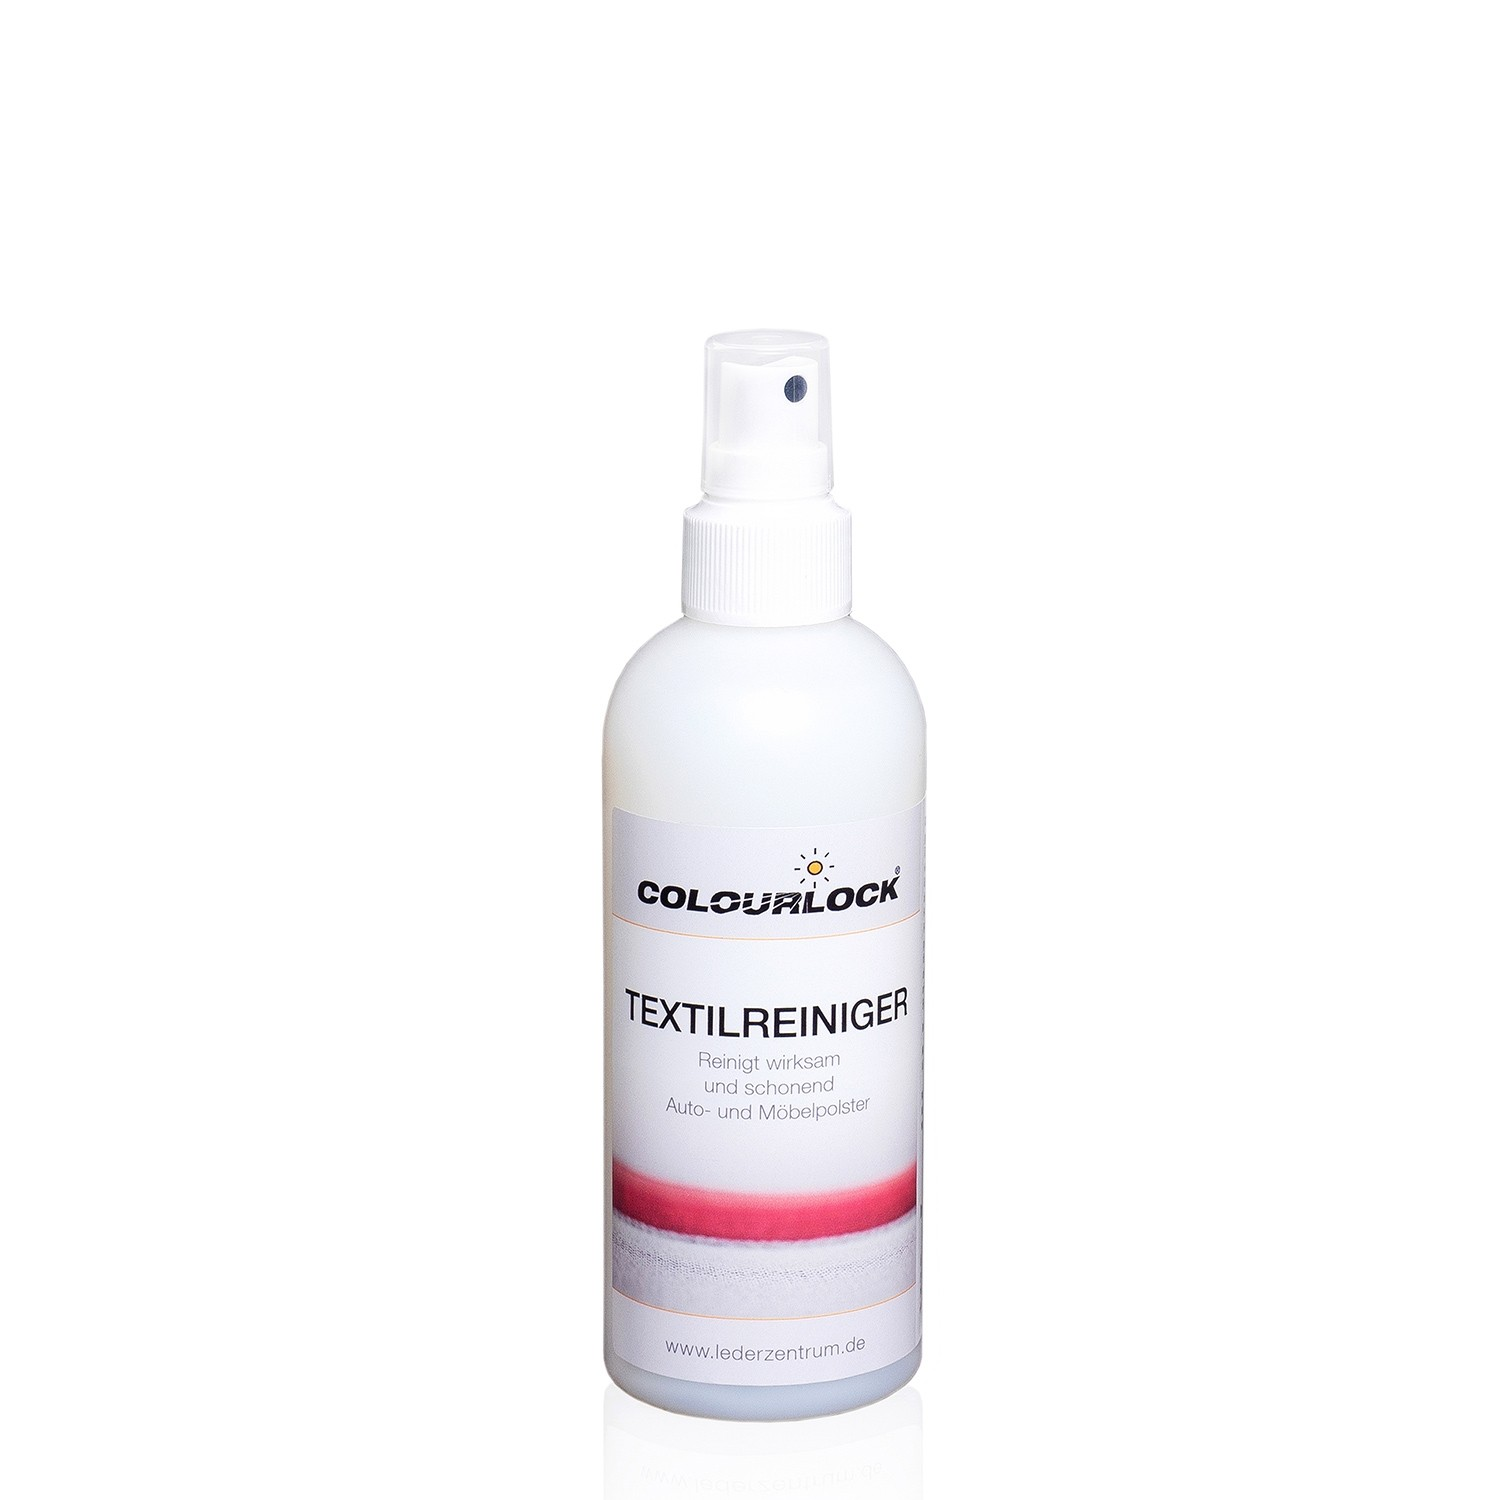 COLOURLOCK Textilreiniger, 250 ml